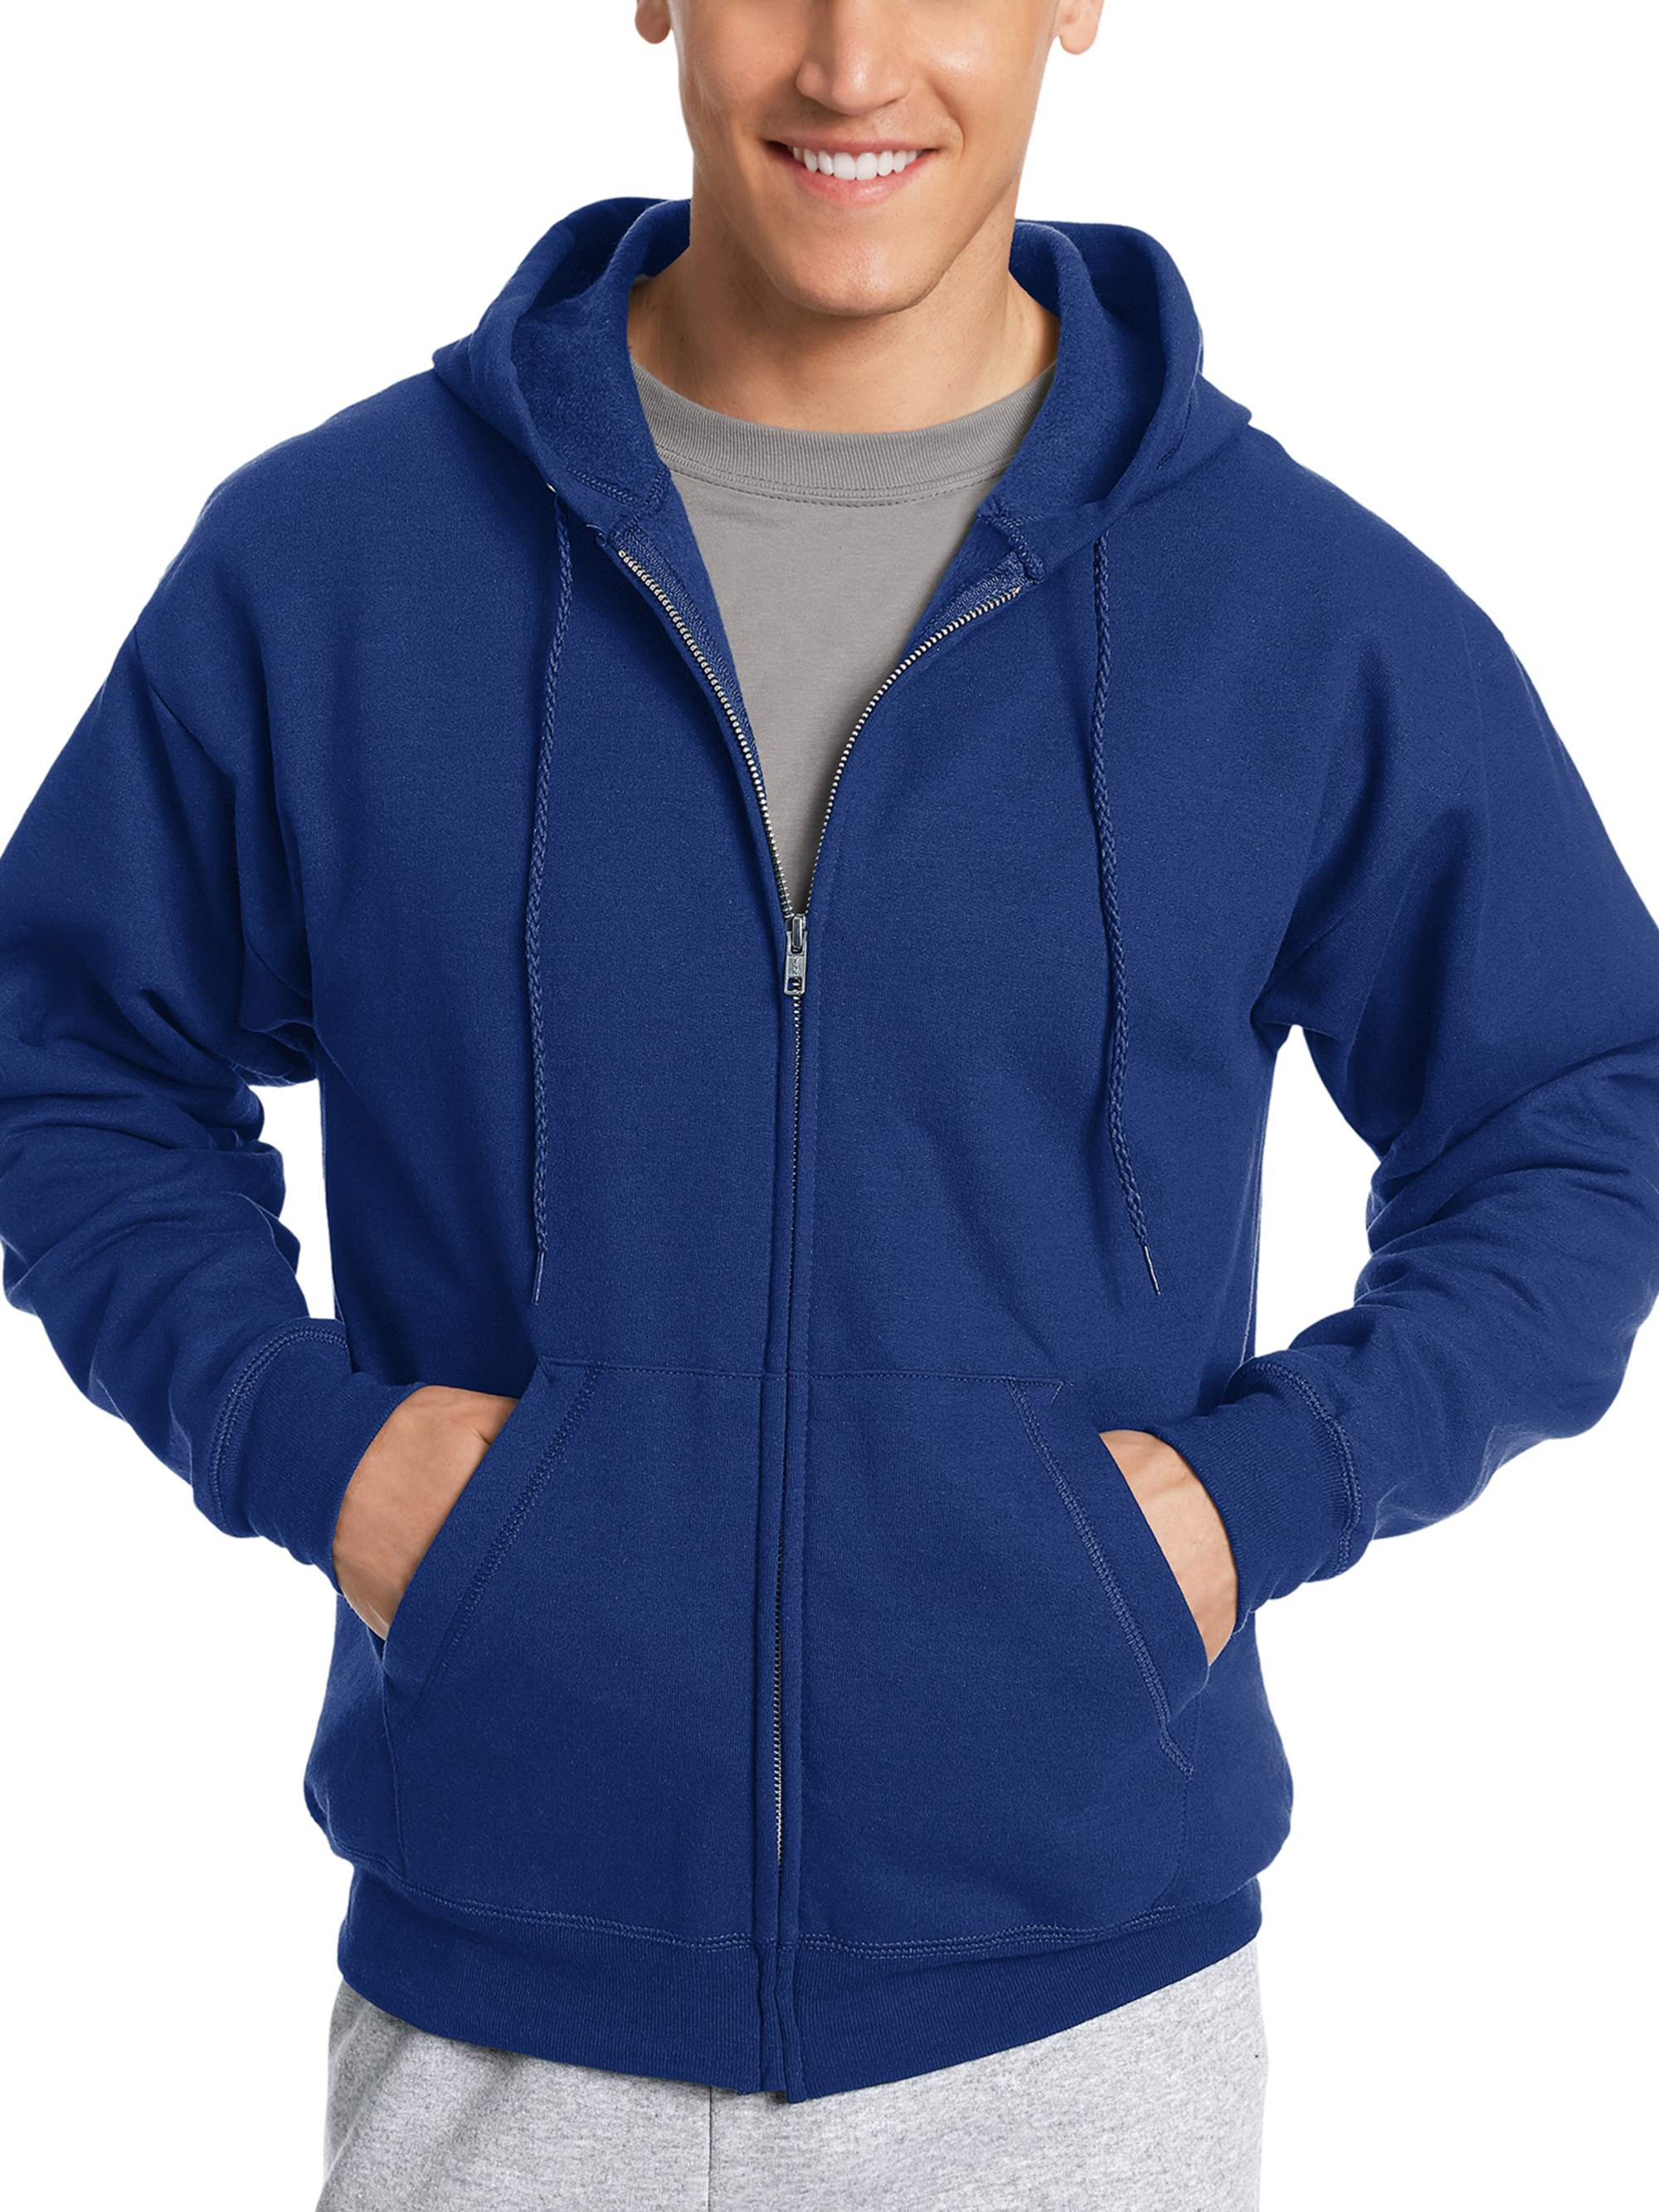 e8e585c3b843 Hanes - Hanes Men s Ecosmart Fleece Zip Pullover Hoodie with Front ...